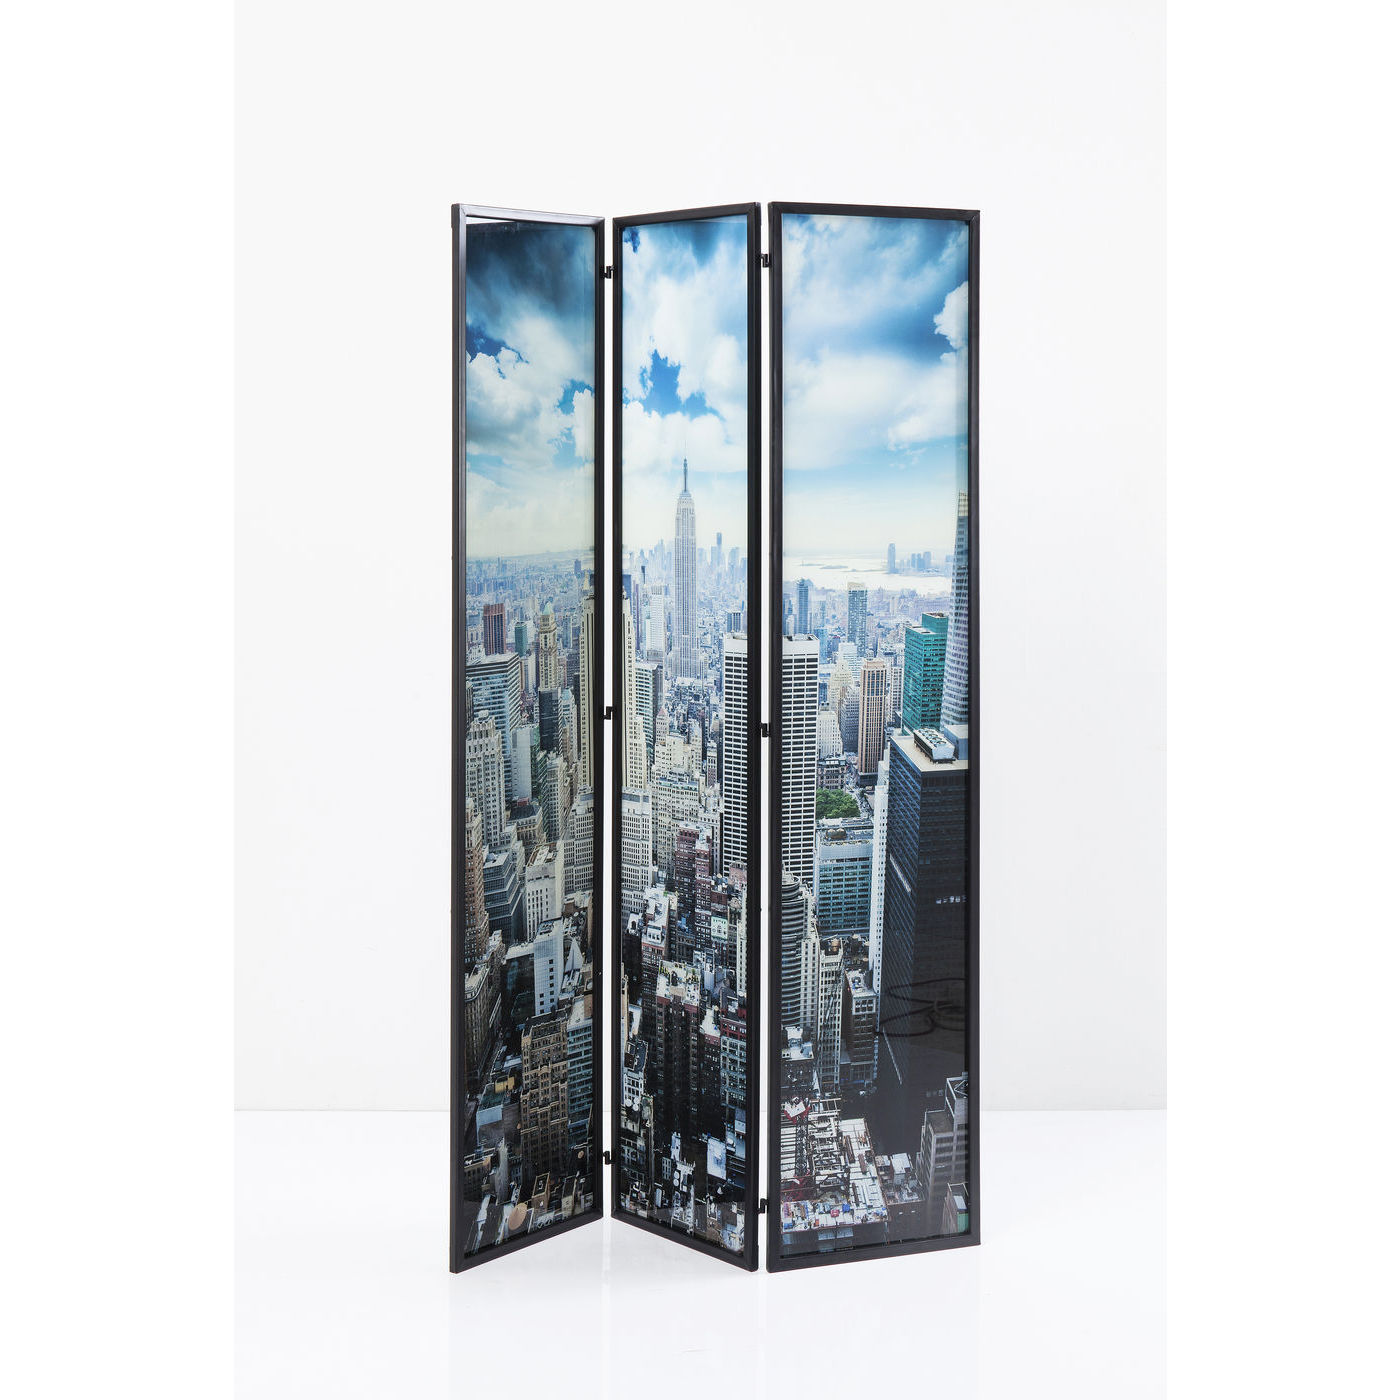 Image of   KARE DESIGN Glass NY Skyline rumdeler - multifarvet lamineret glas og stål